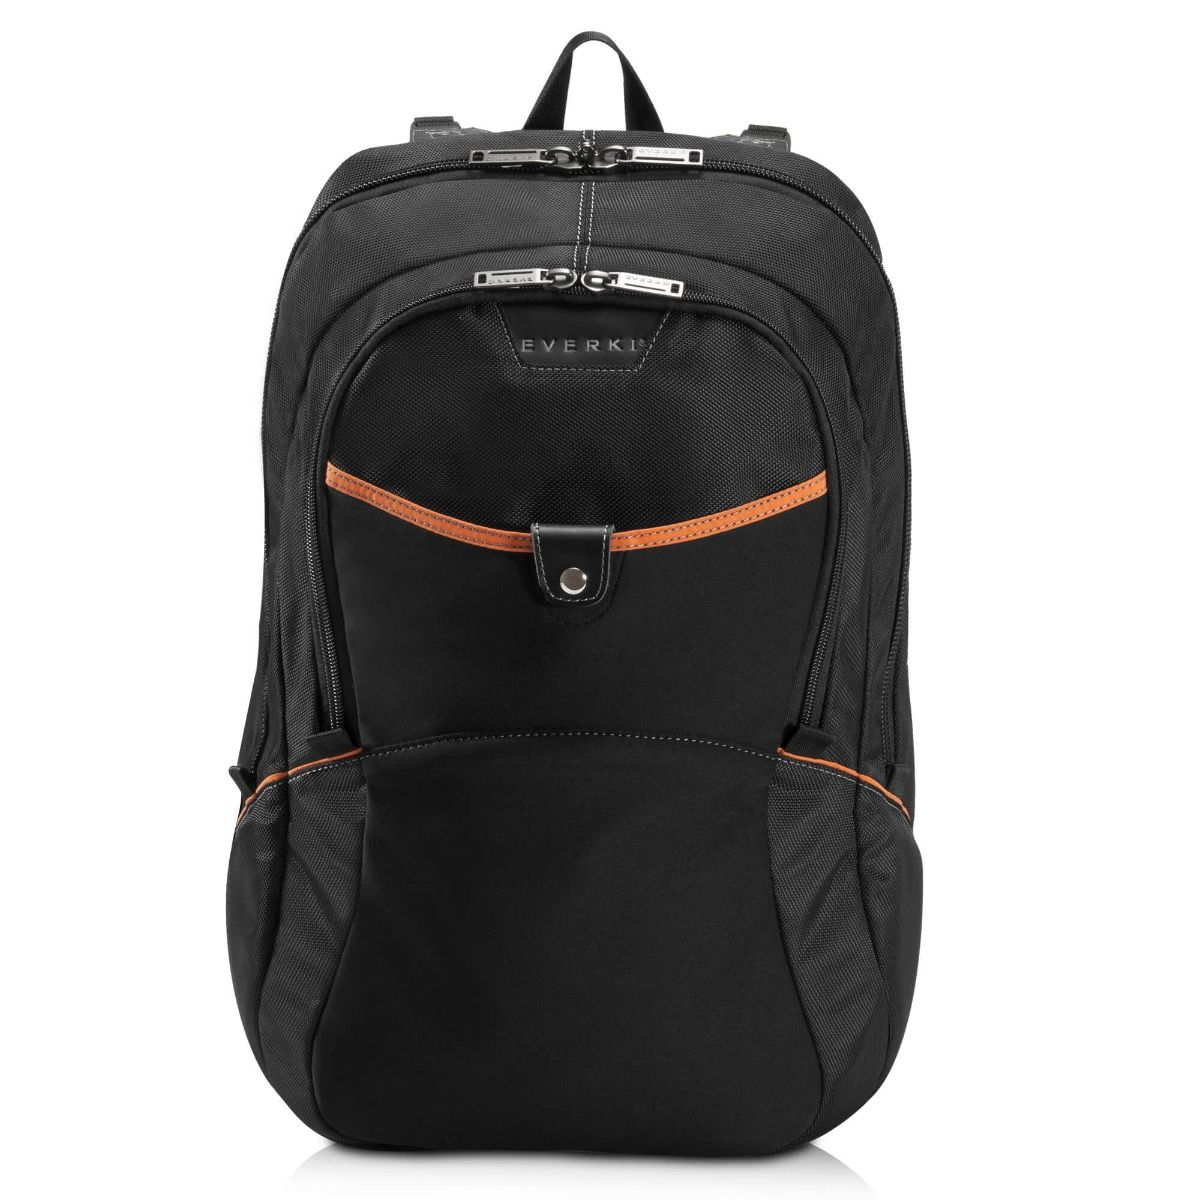 EVERKI Glide 17 Inch Laptop Backpack